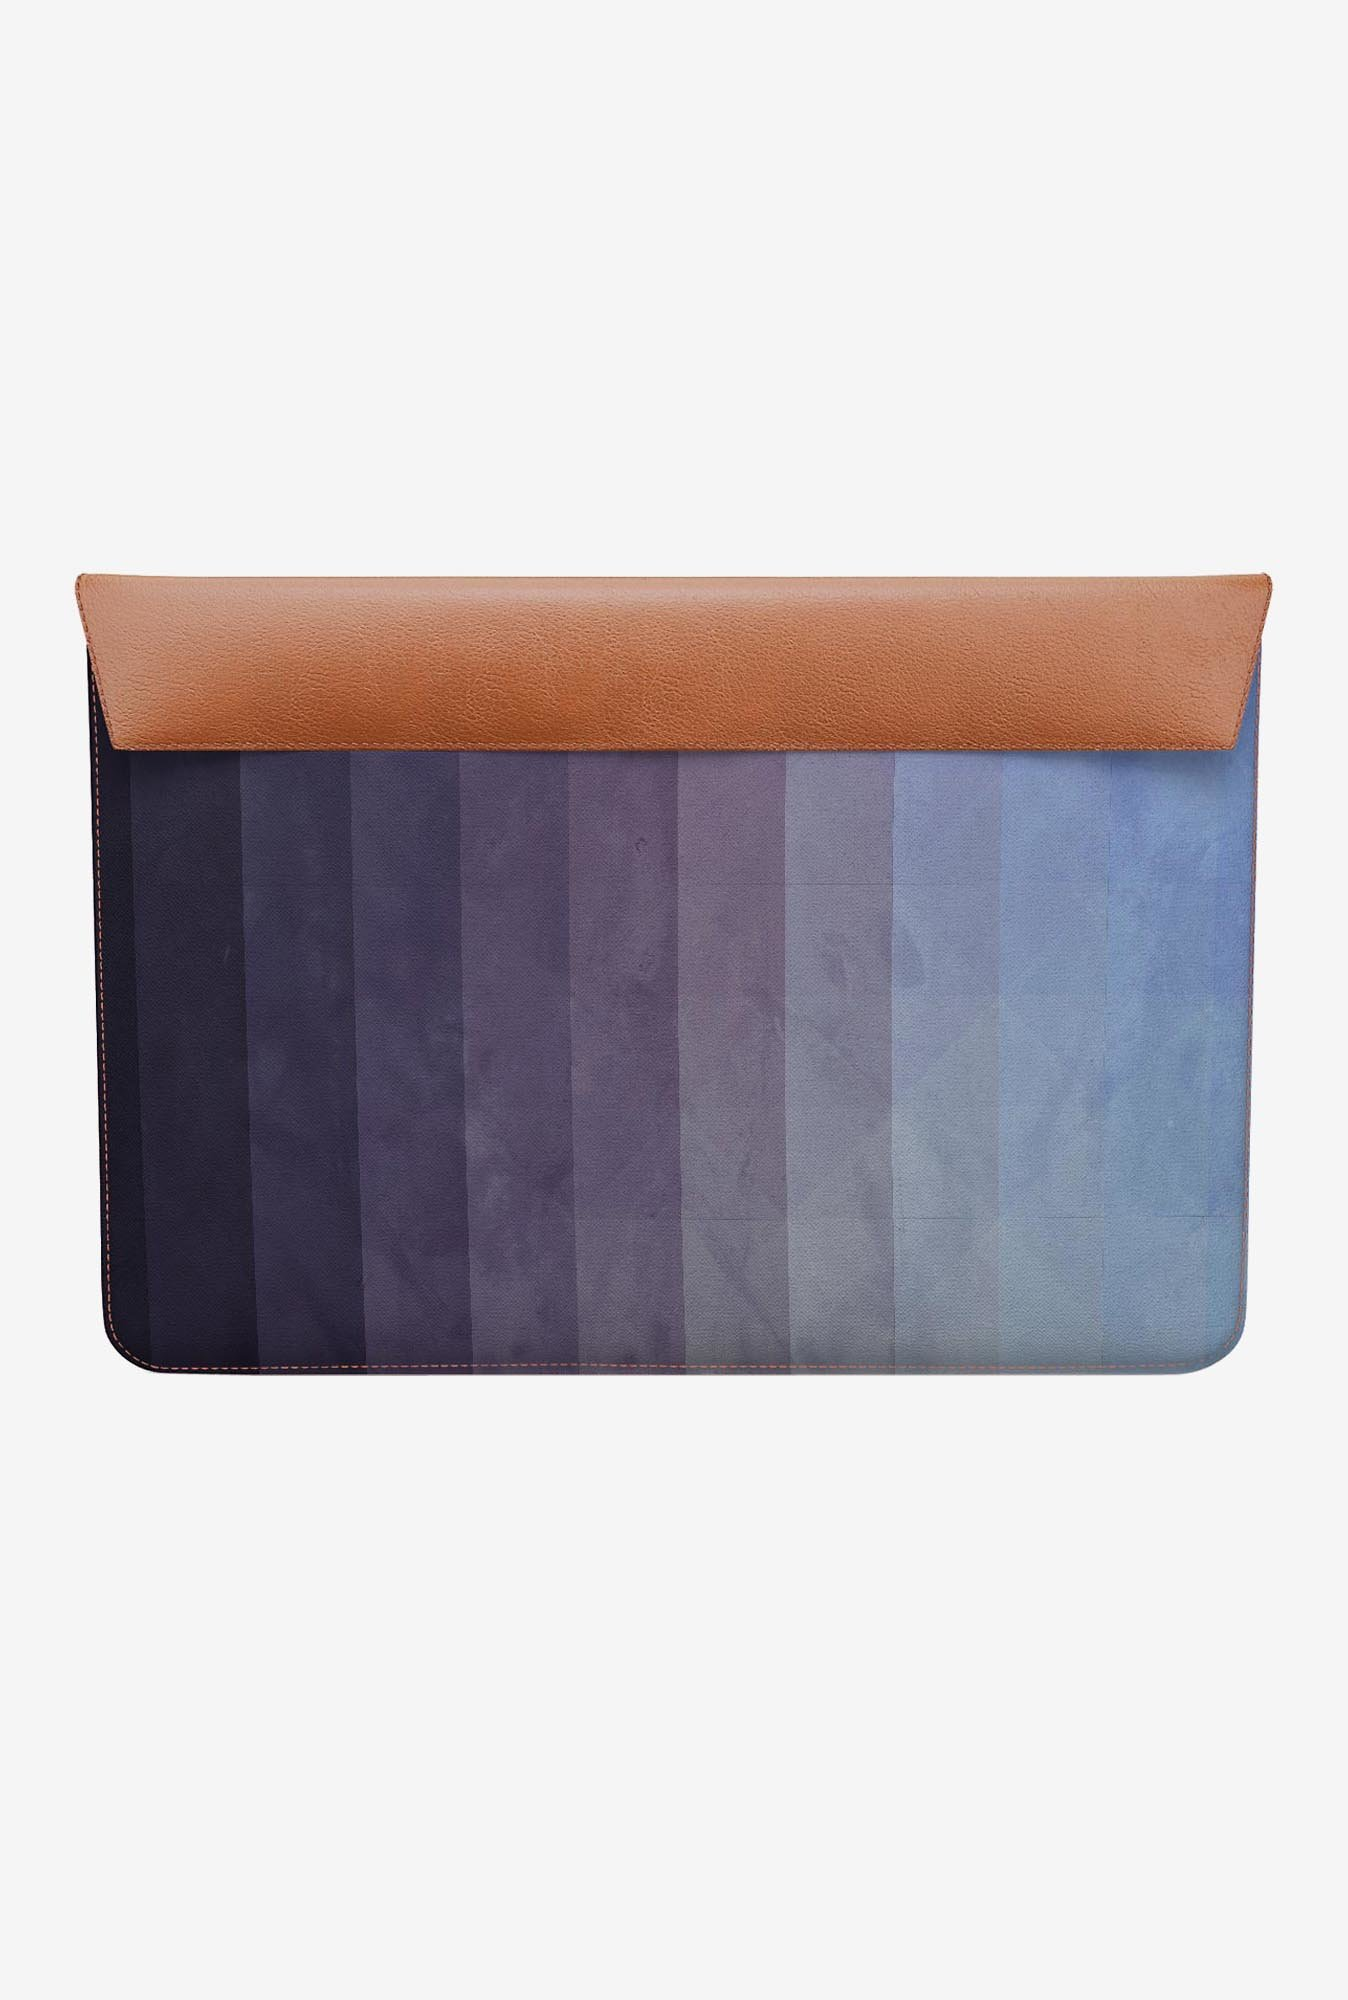 "DailyObjects Myssyng Yww Macbook Pro 15"" Envelope Sleeve"